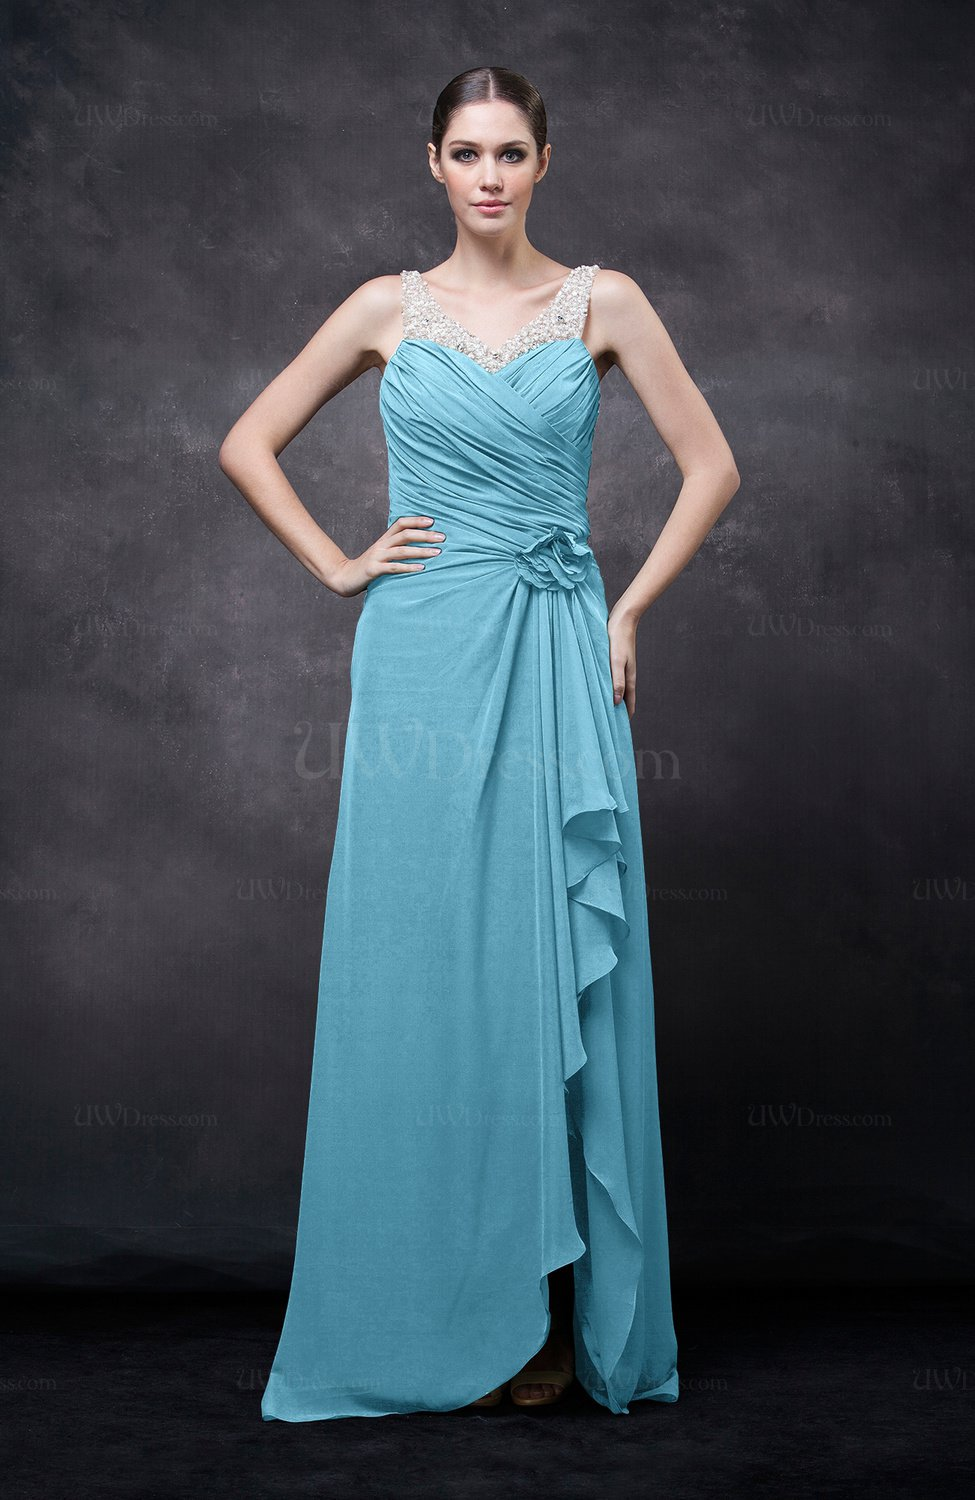 Light Blue Romantic Illusion Backless Chiffon Flower Wedding Guest Dresses